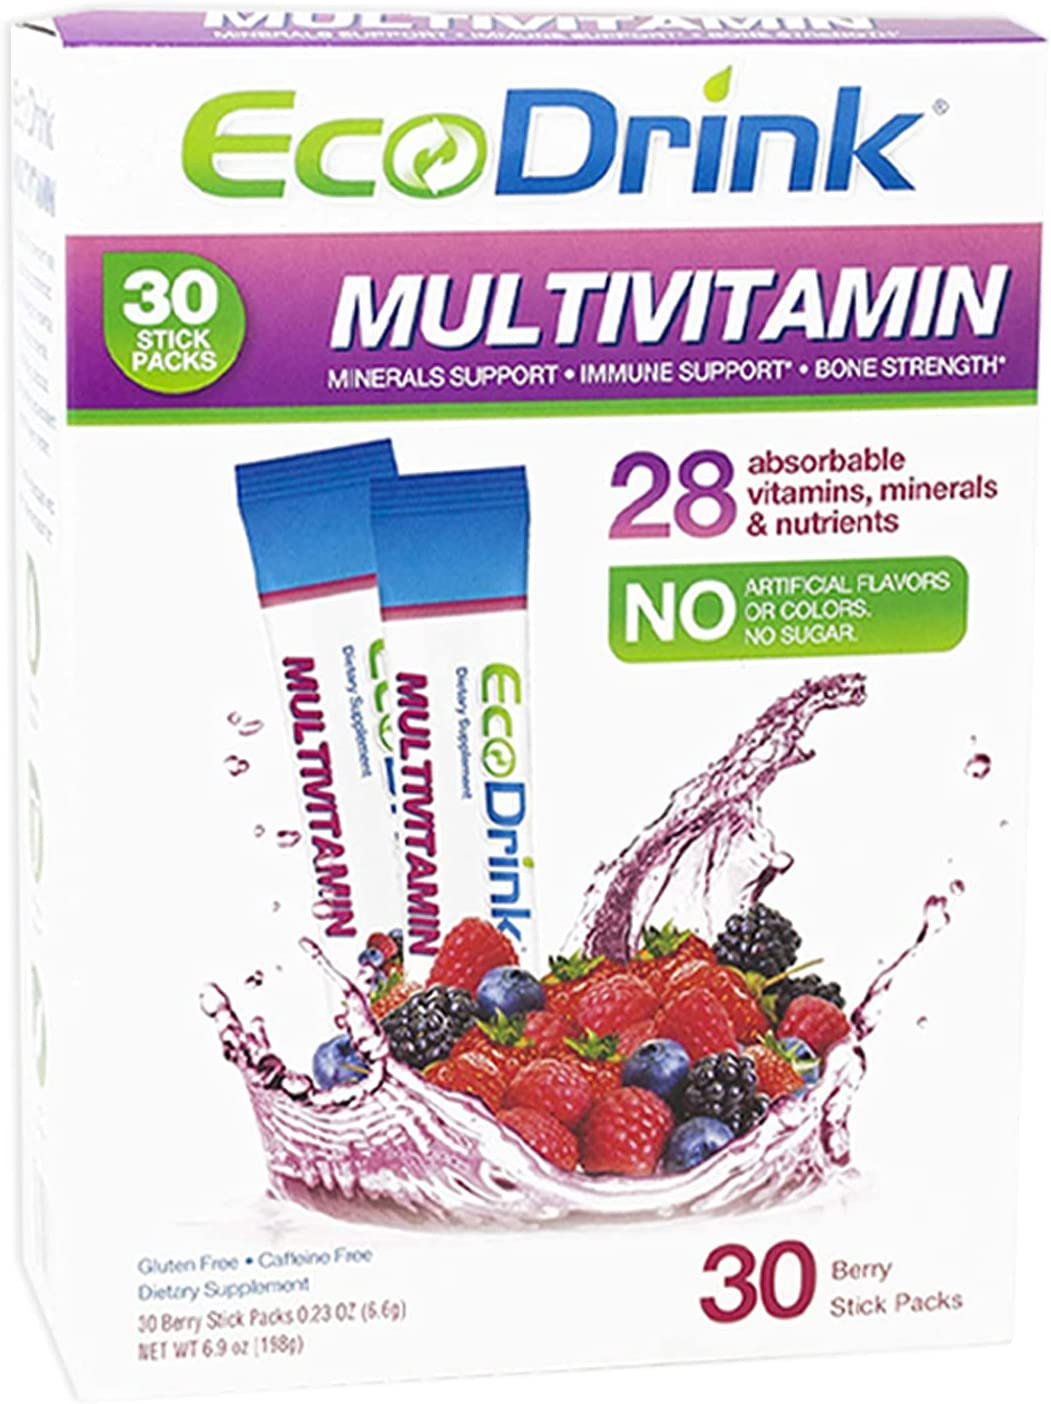 EcoDrink At the price Complete Multivitamin Mix Drink. Coun Berry Special price for a limited time - 30 Flavor